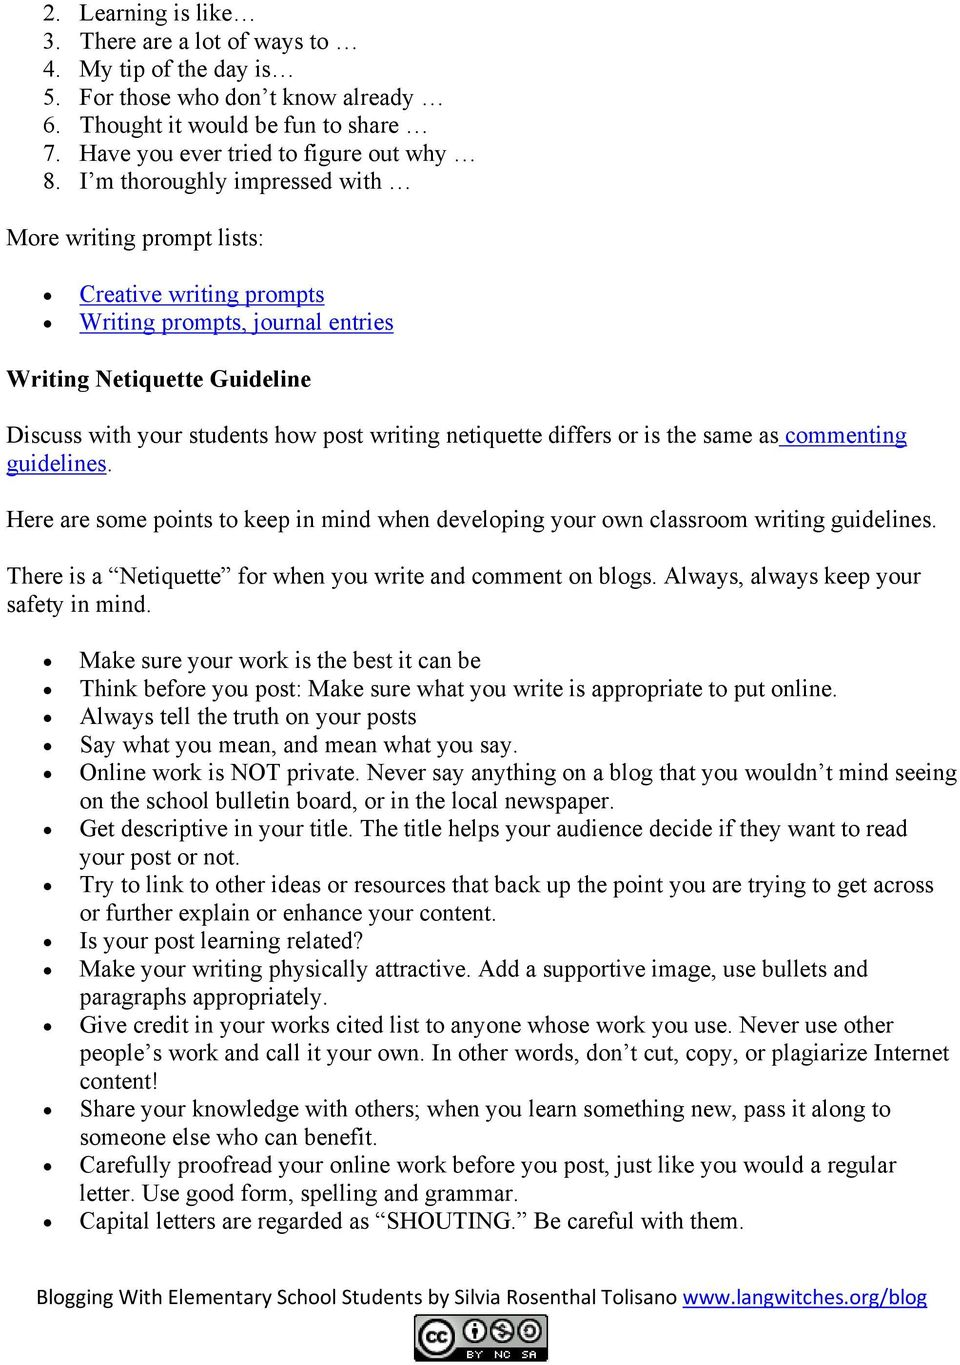 differs or is the same as commenting guidelines. Here are some points to keep in mind when developing your own classroom writing guidelines.